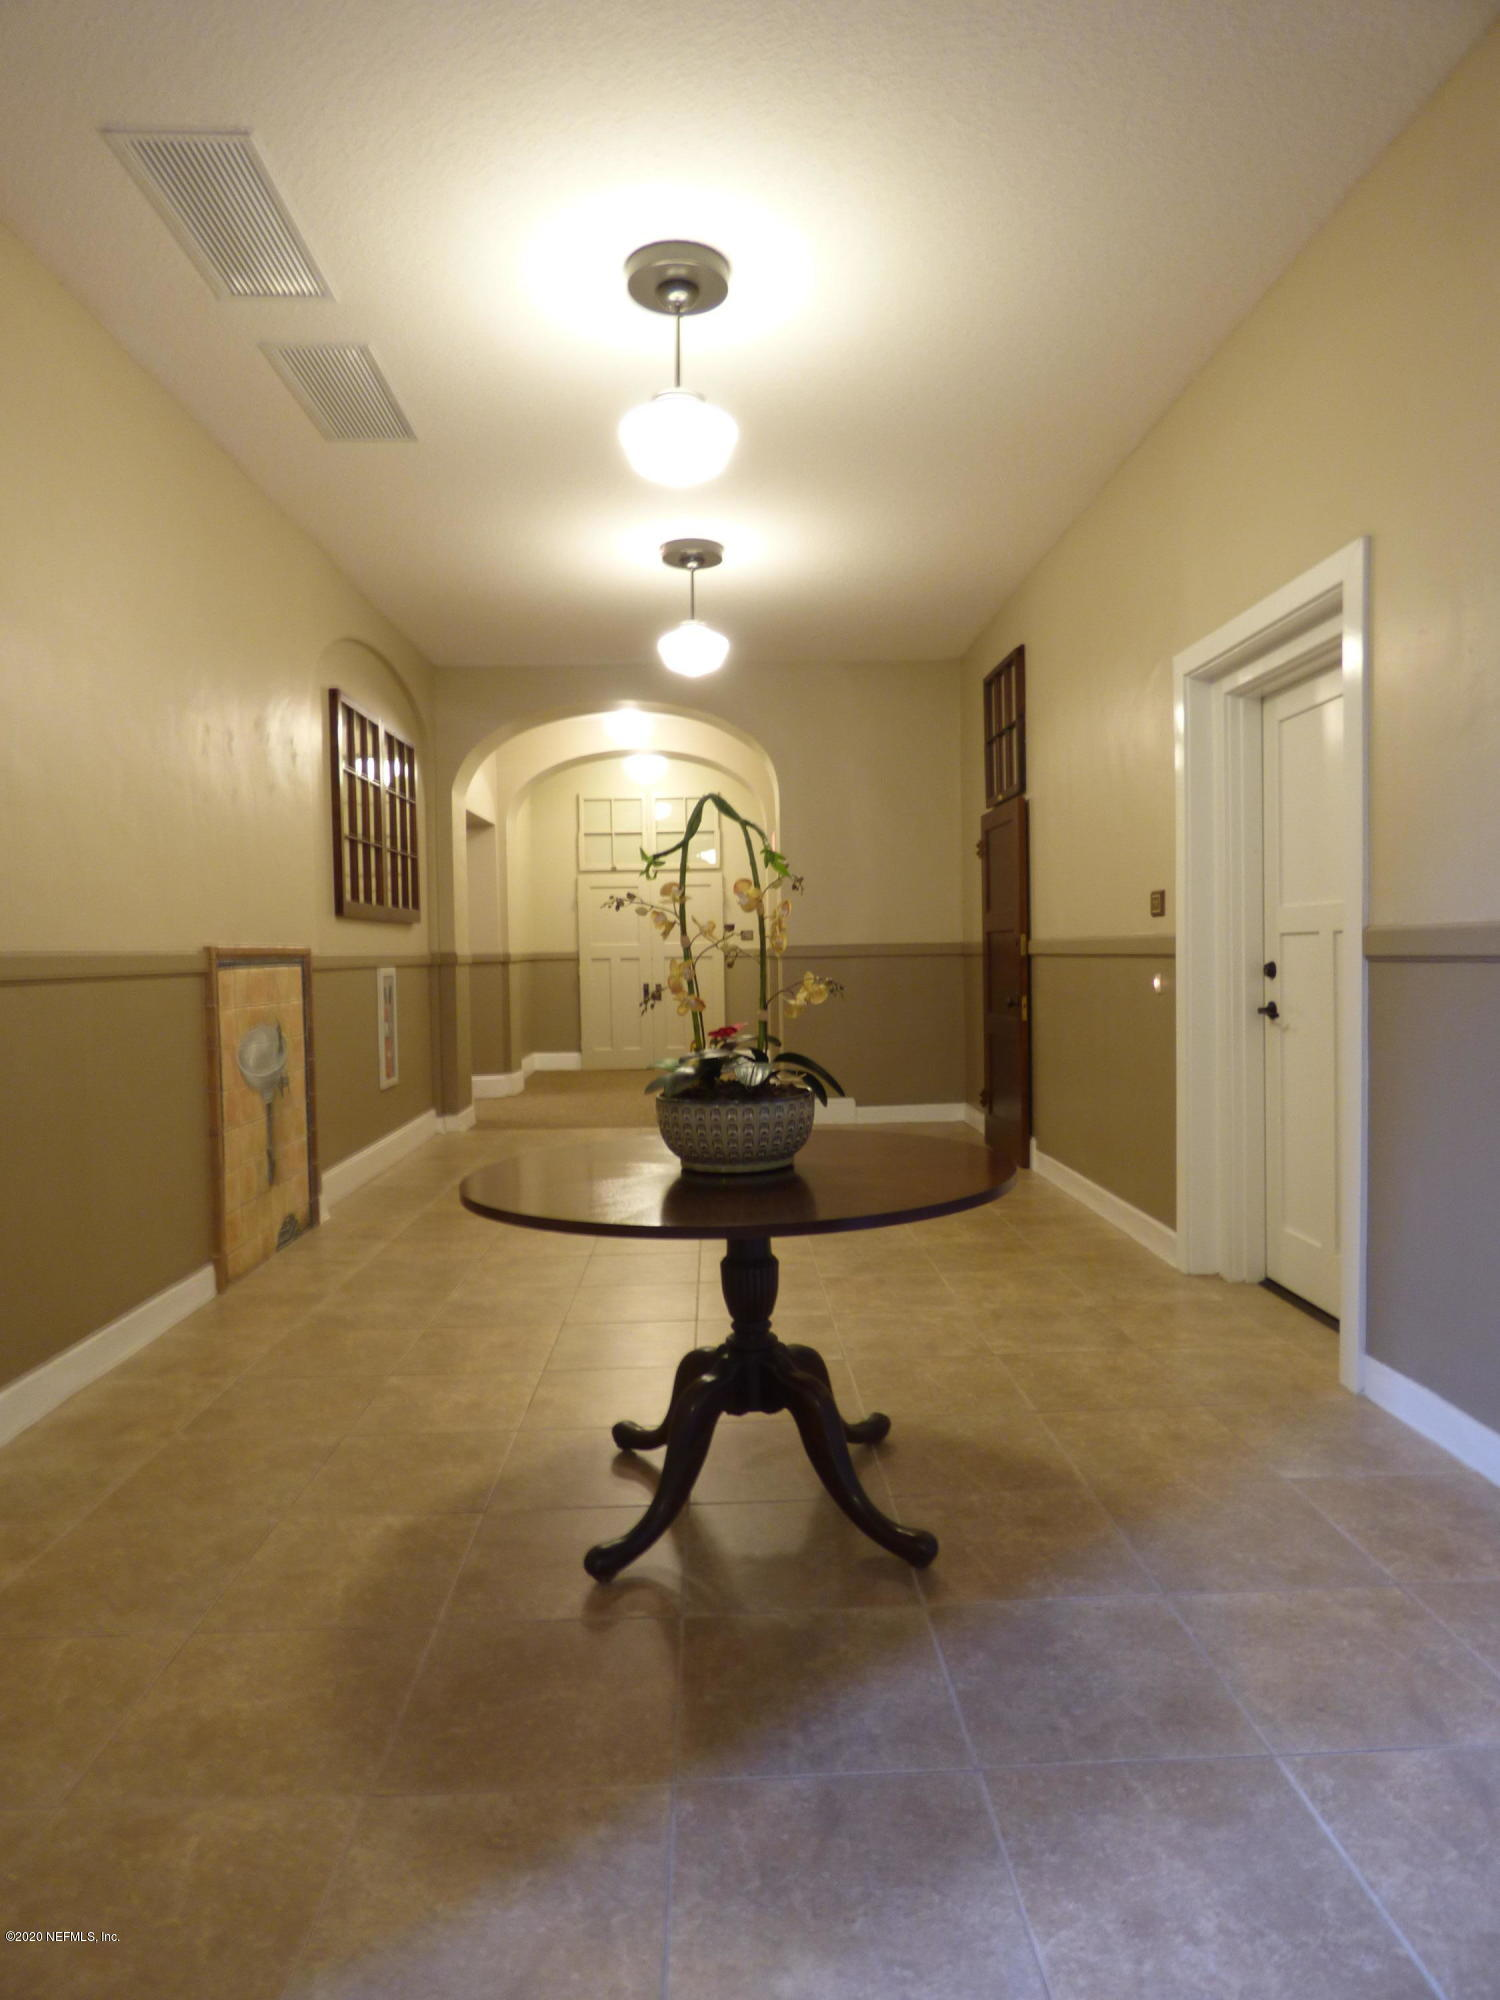 2525 COLLEGE, JACKSONVILLE, FLORIDA 32204, 2 Bedrooms Bedrooms, ,2 BathroomsBathrooms,Rental,For Rent,COLLEGE,1072052